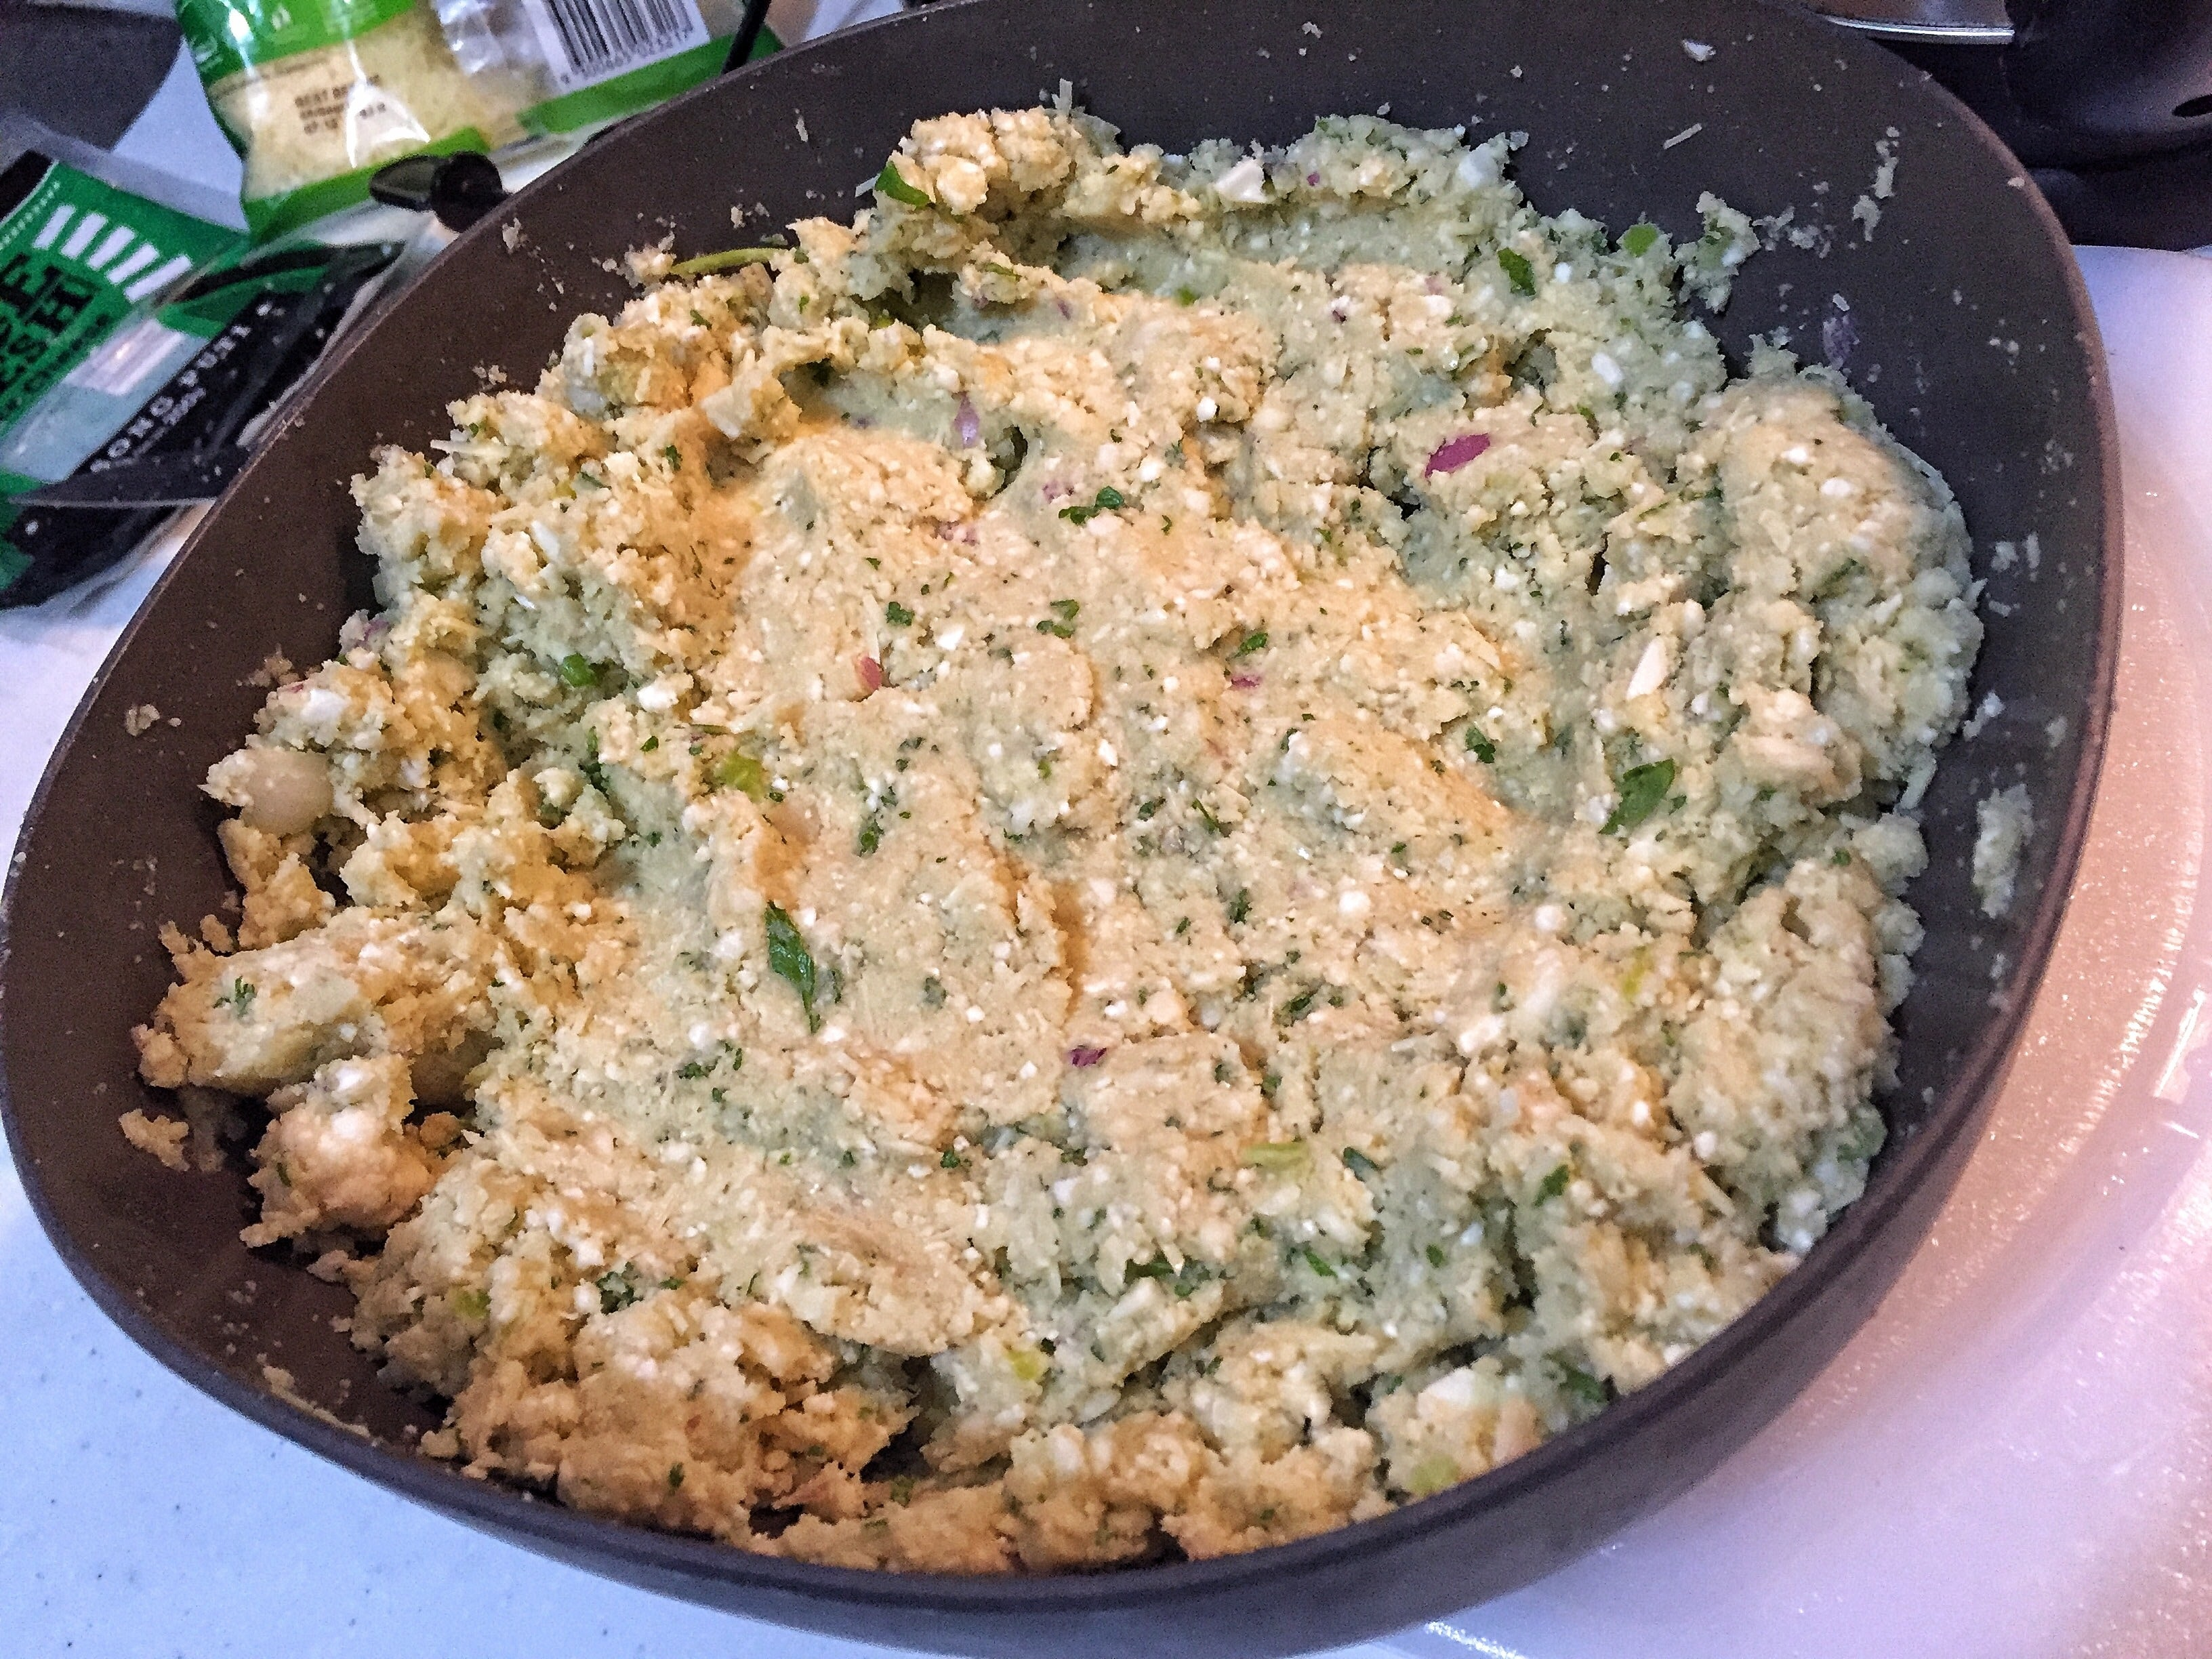 Cauliflower Broccoli Rice